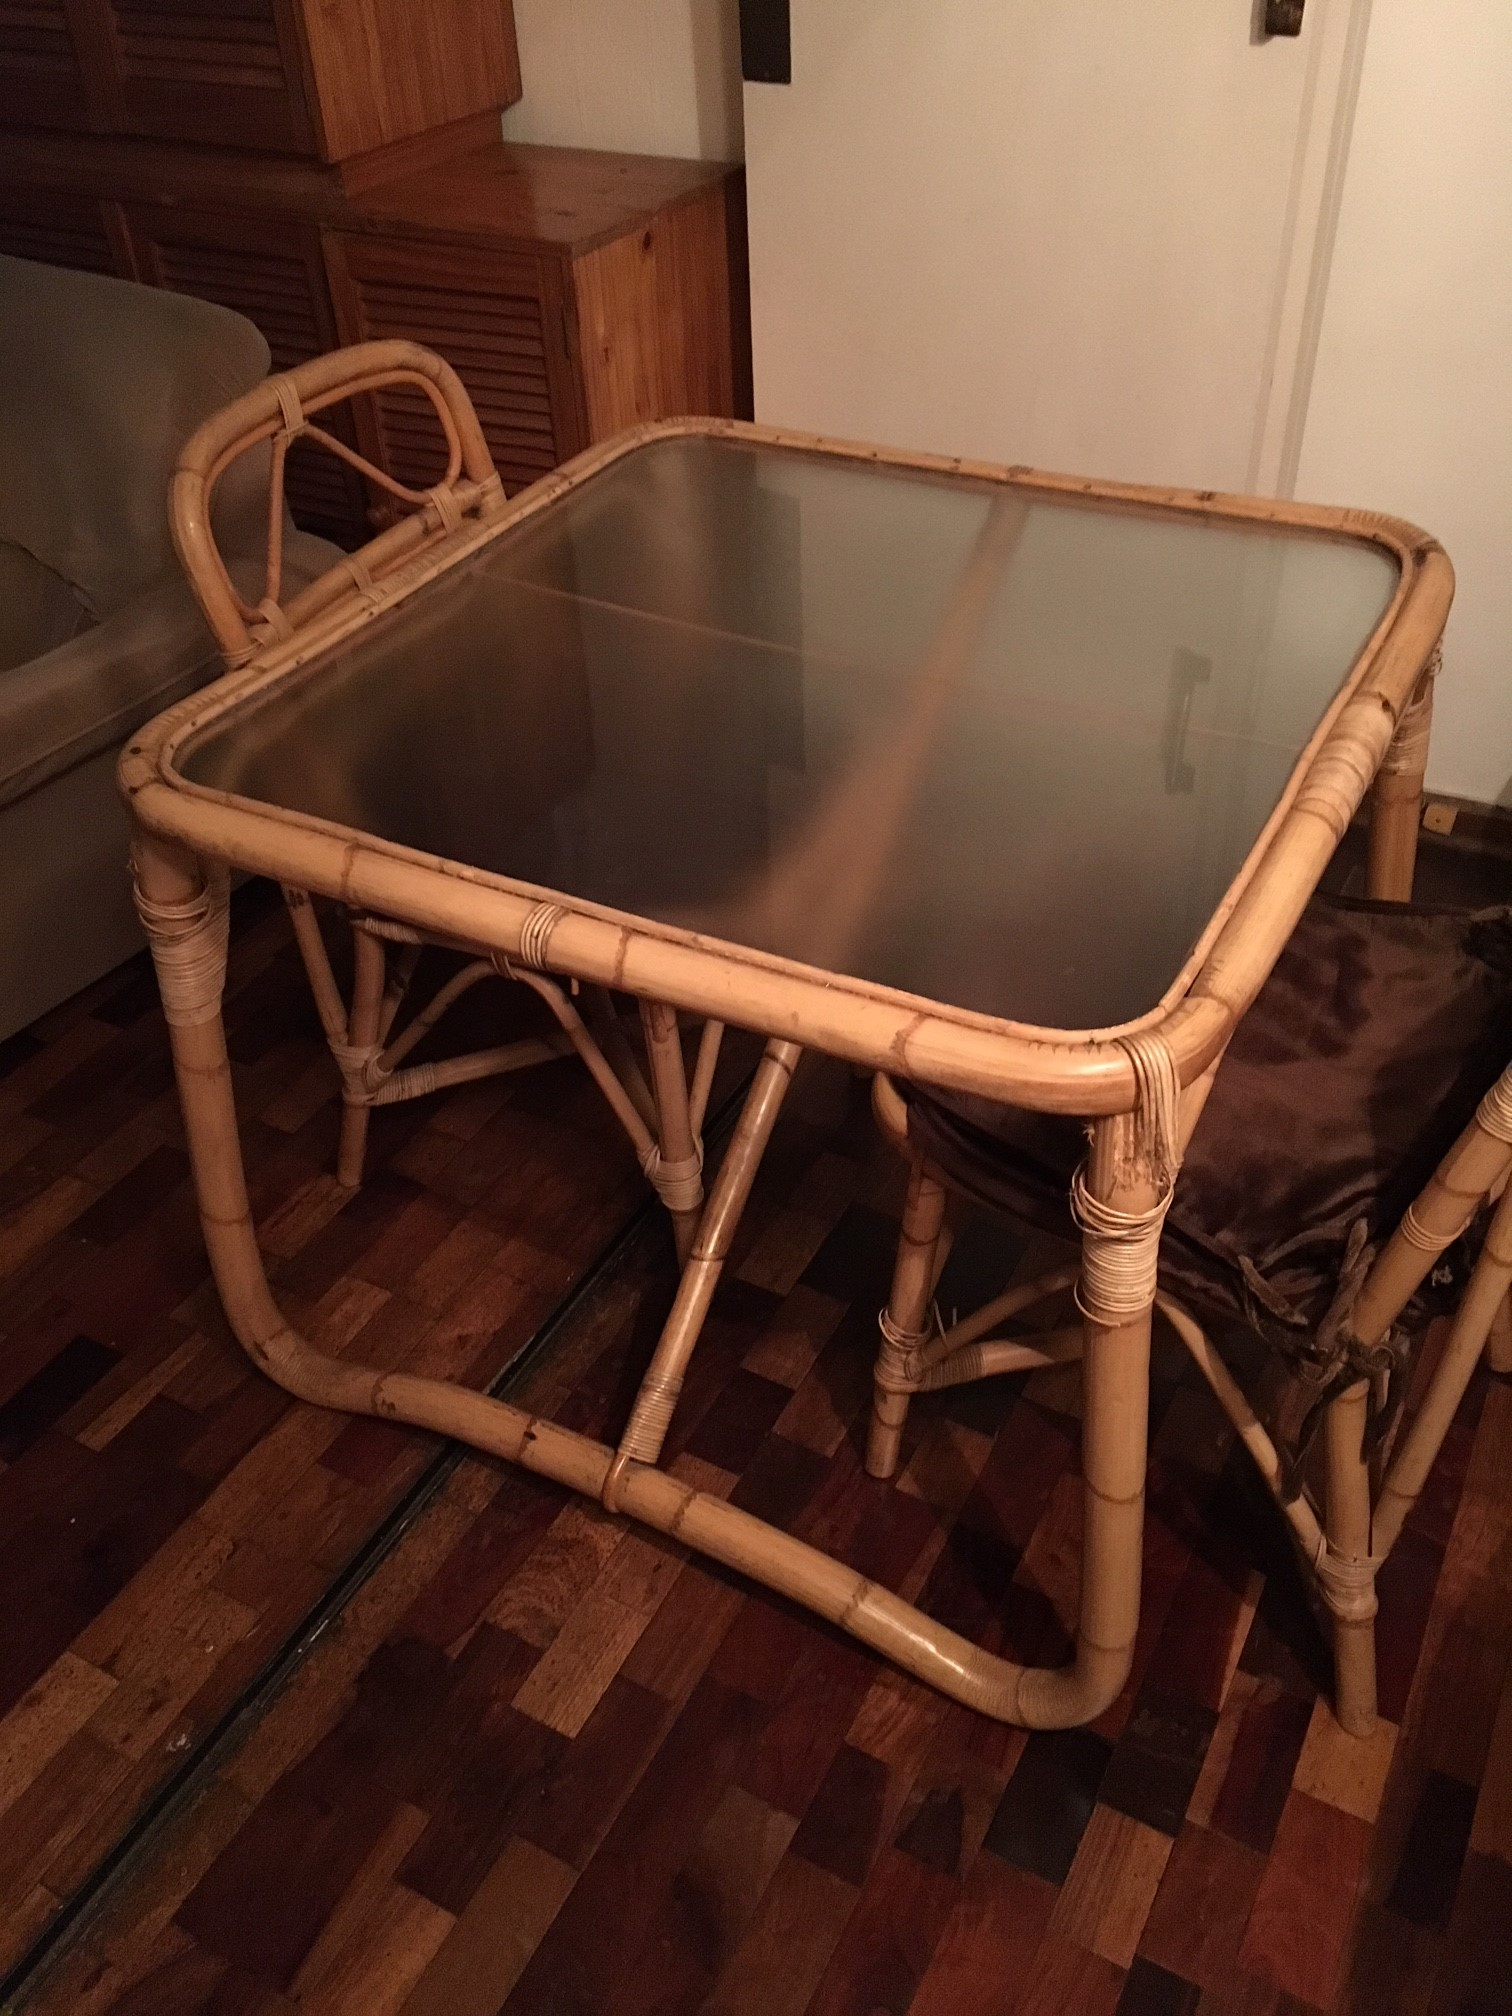 Cane table and 2 chairs for sale.